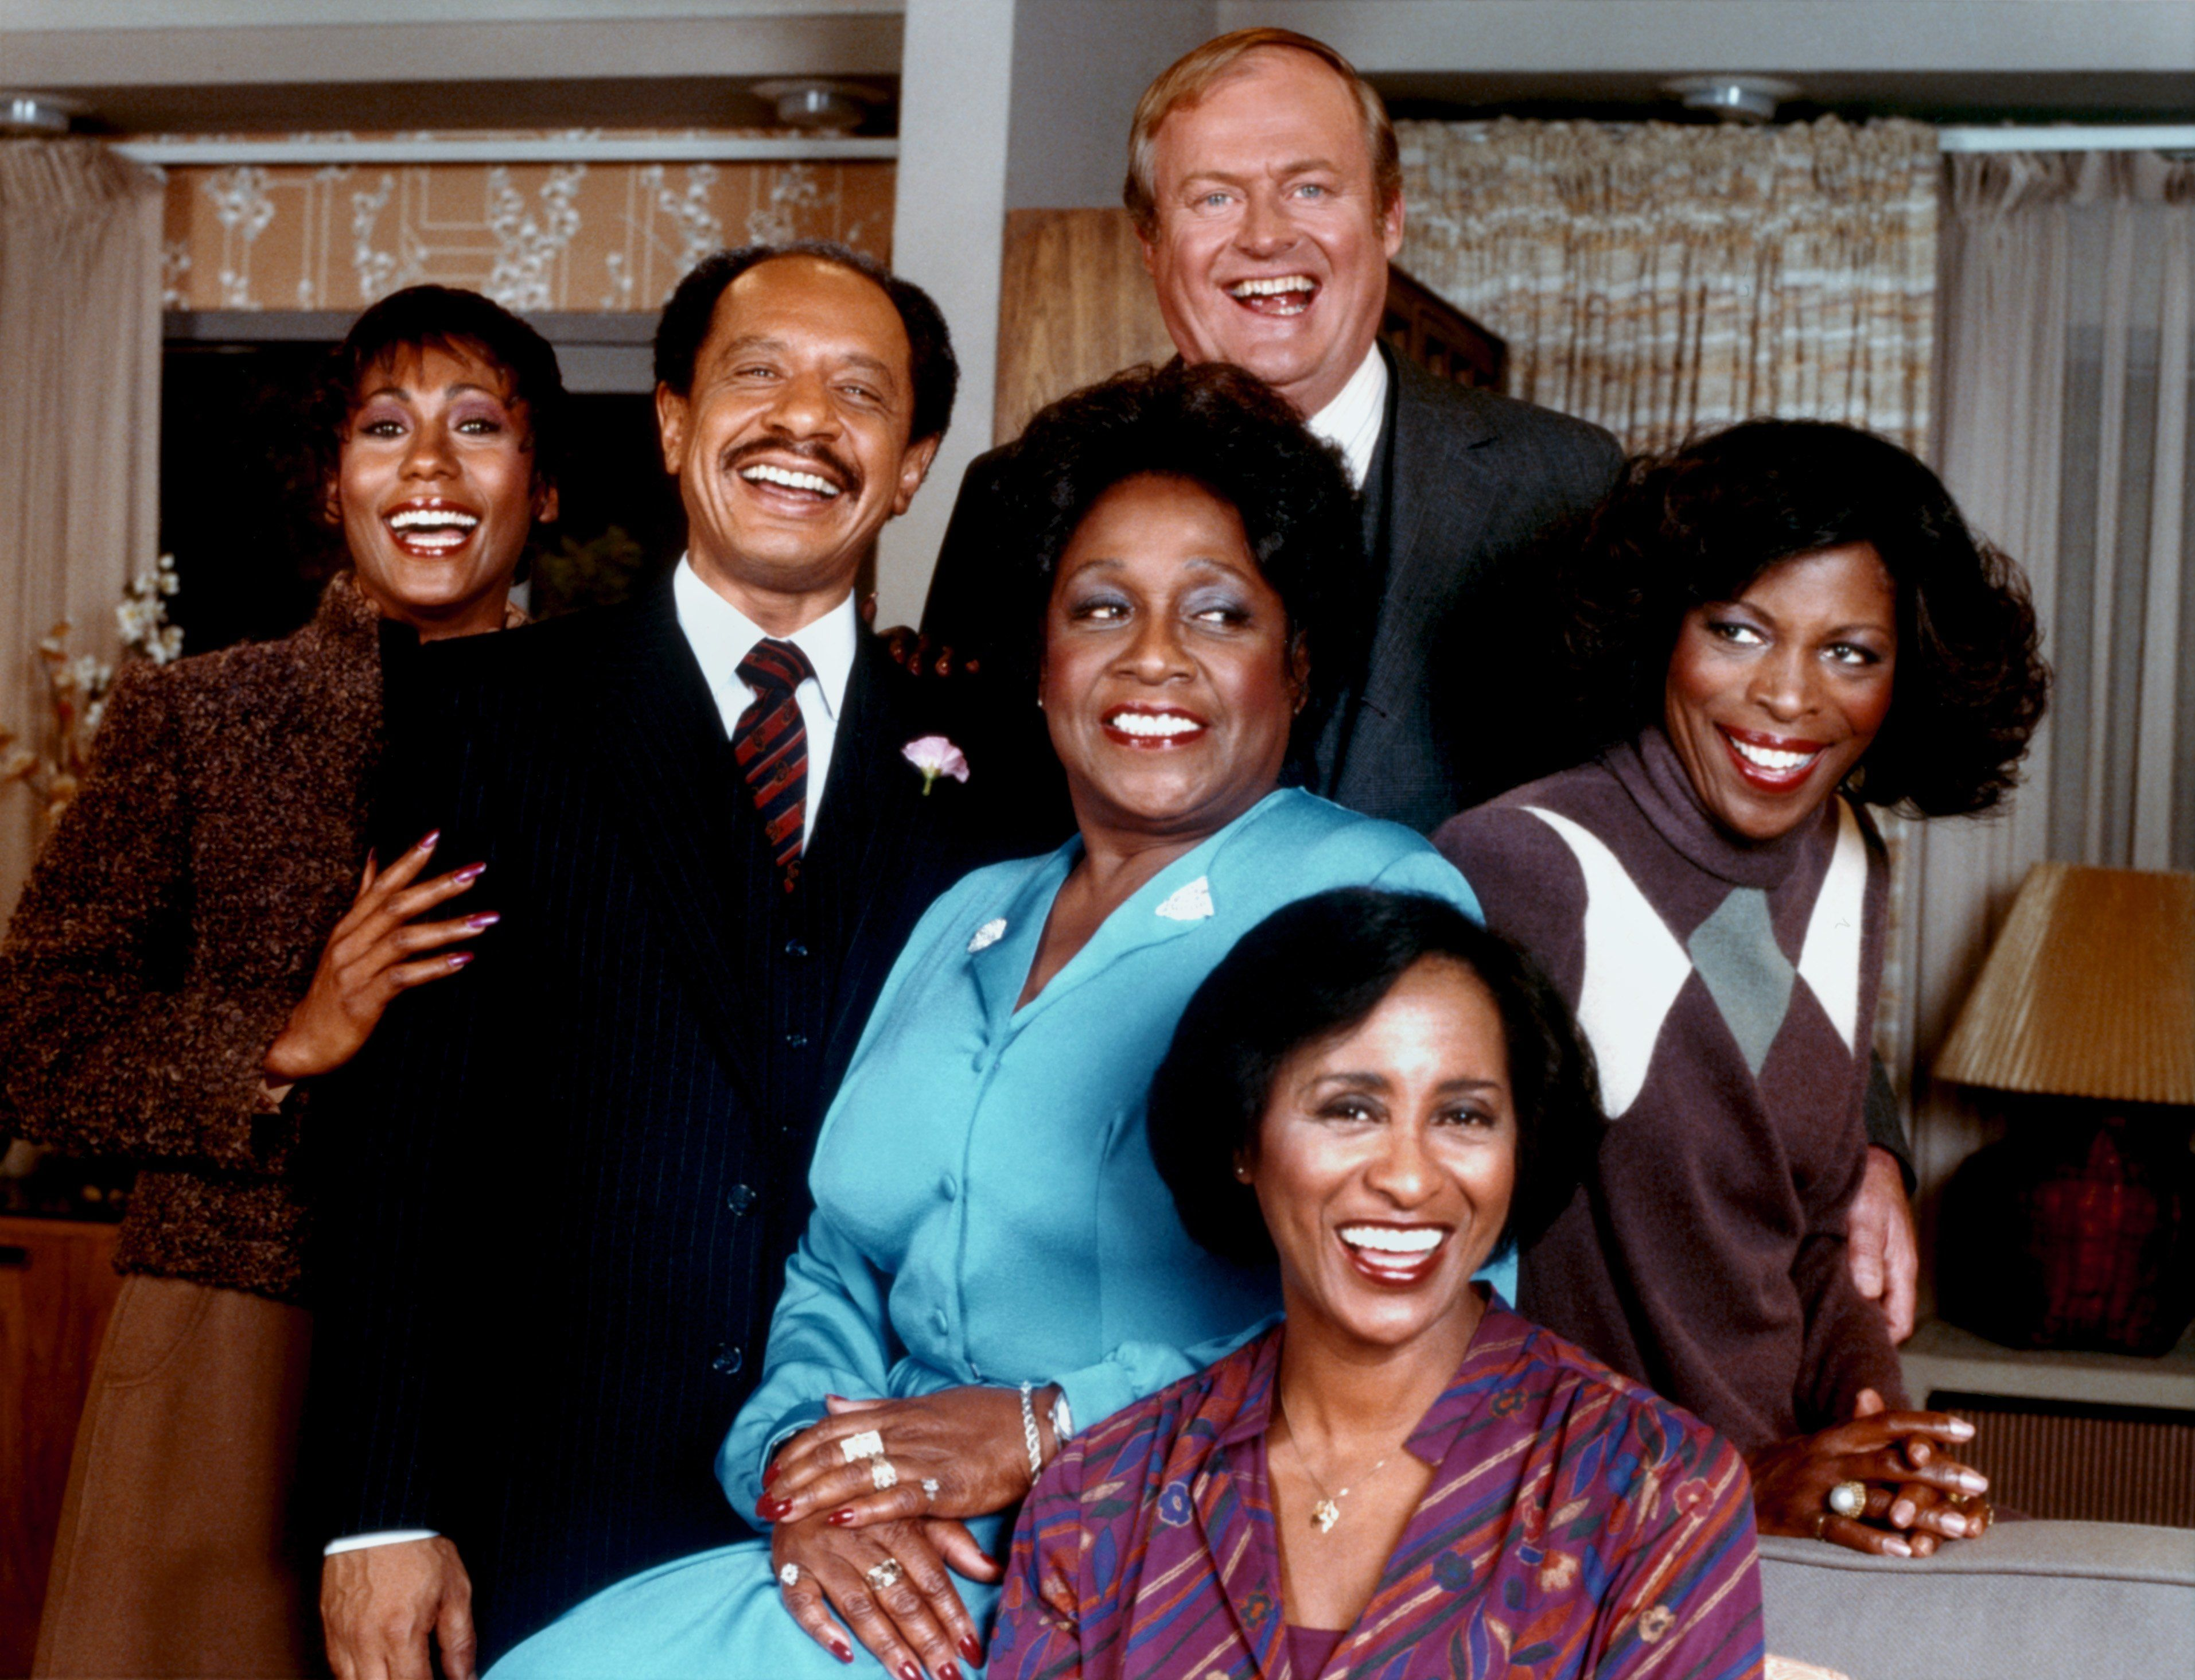 The cast of the Jeffersons in 1975. |Photo: Getty Images